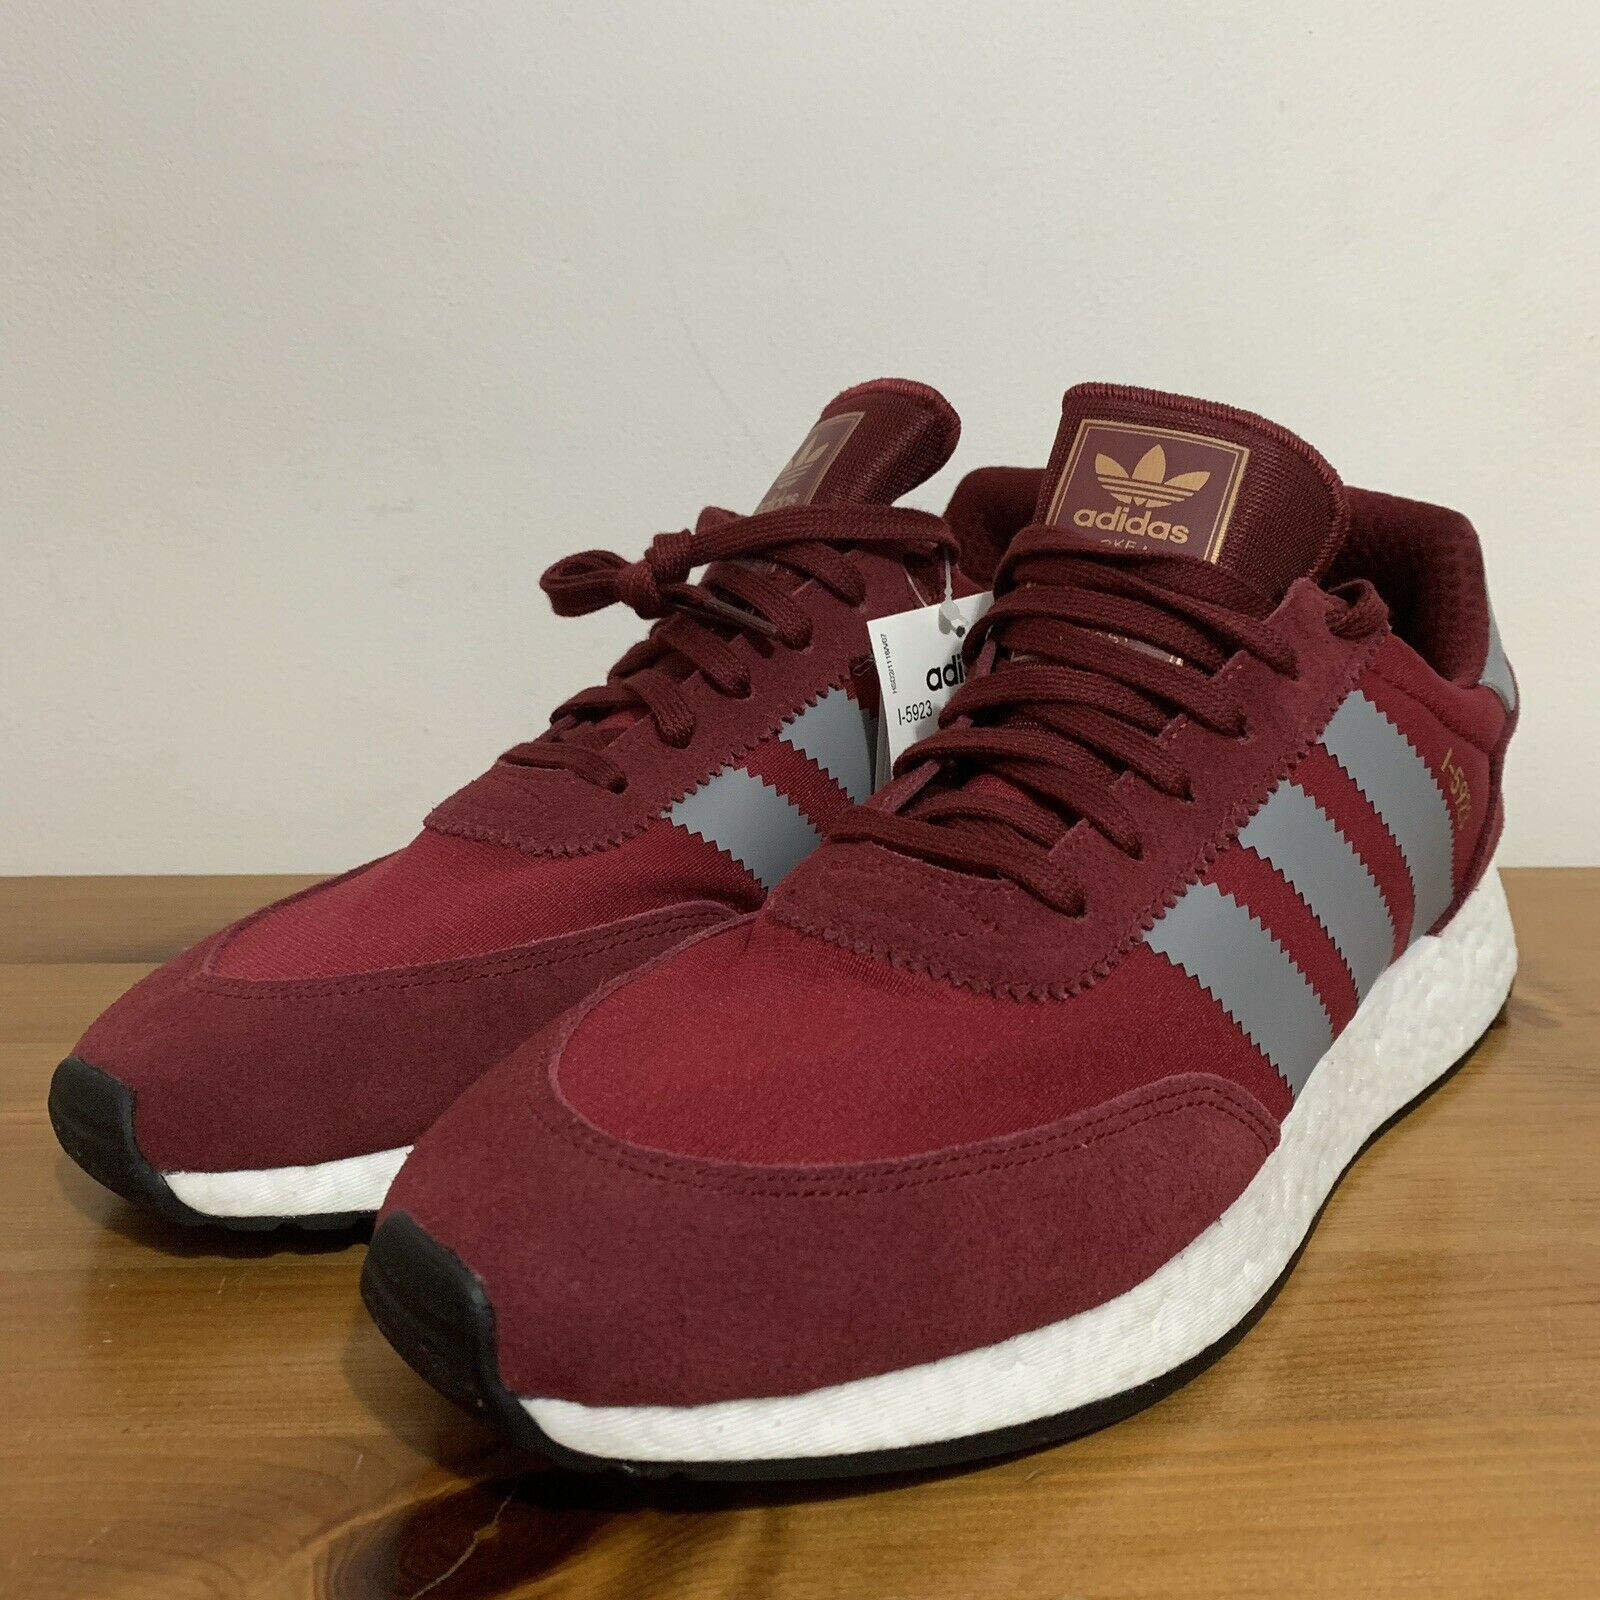 hot sale online a8809 32beb Original Inki N-5923 Burgundy Suede Fabric UK 11 Men s Trainers Red Adidas  ooizub3143-Men s Trainers. Adidas Originals ZX Flux ...